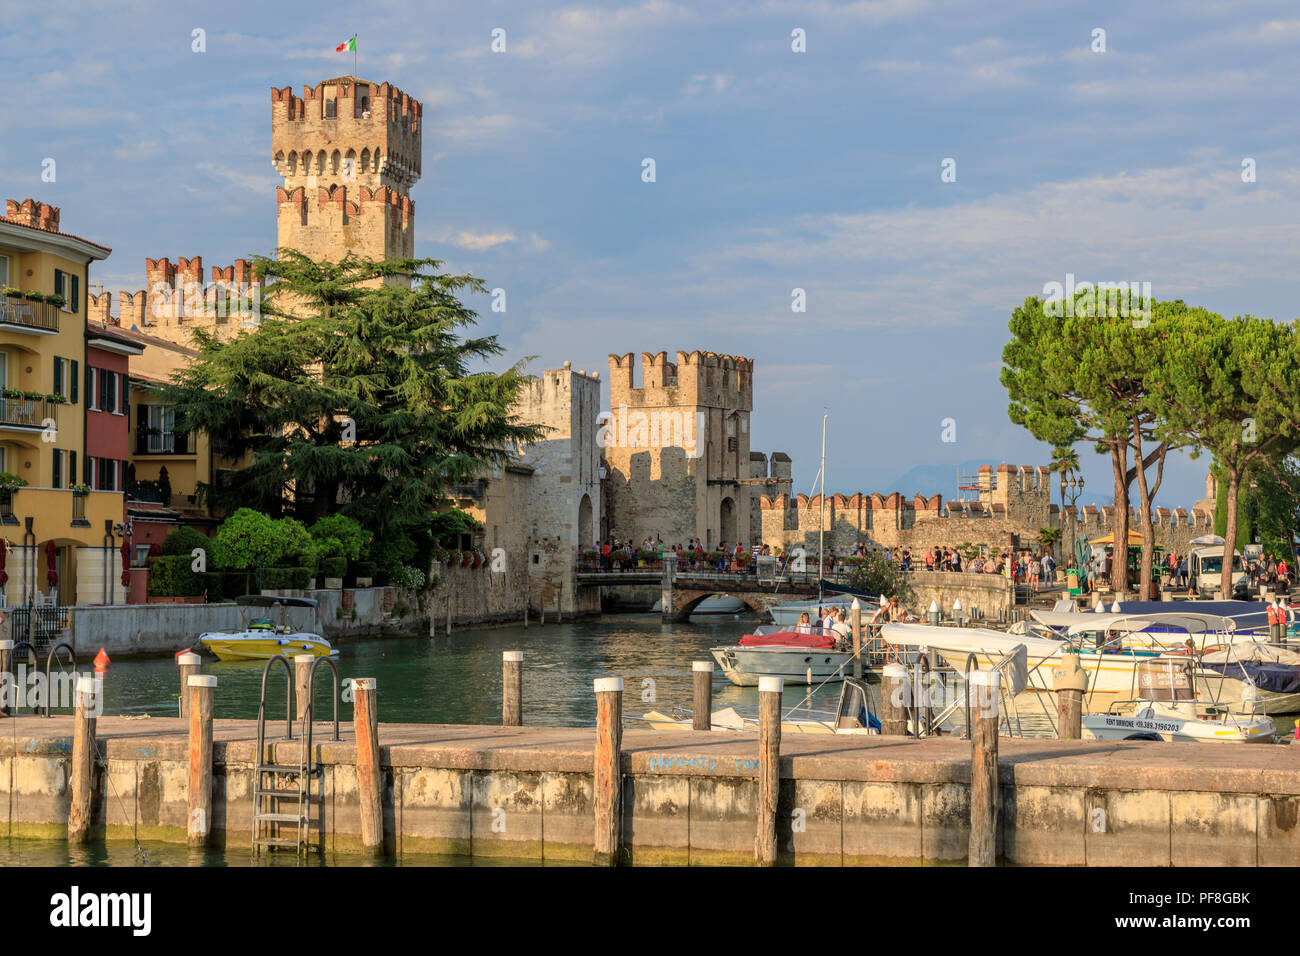 The harbour and castle of Sirmione a medieval town and tourist destination on Lake Garda in the Italian Lakes region - Stock Image